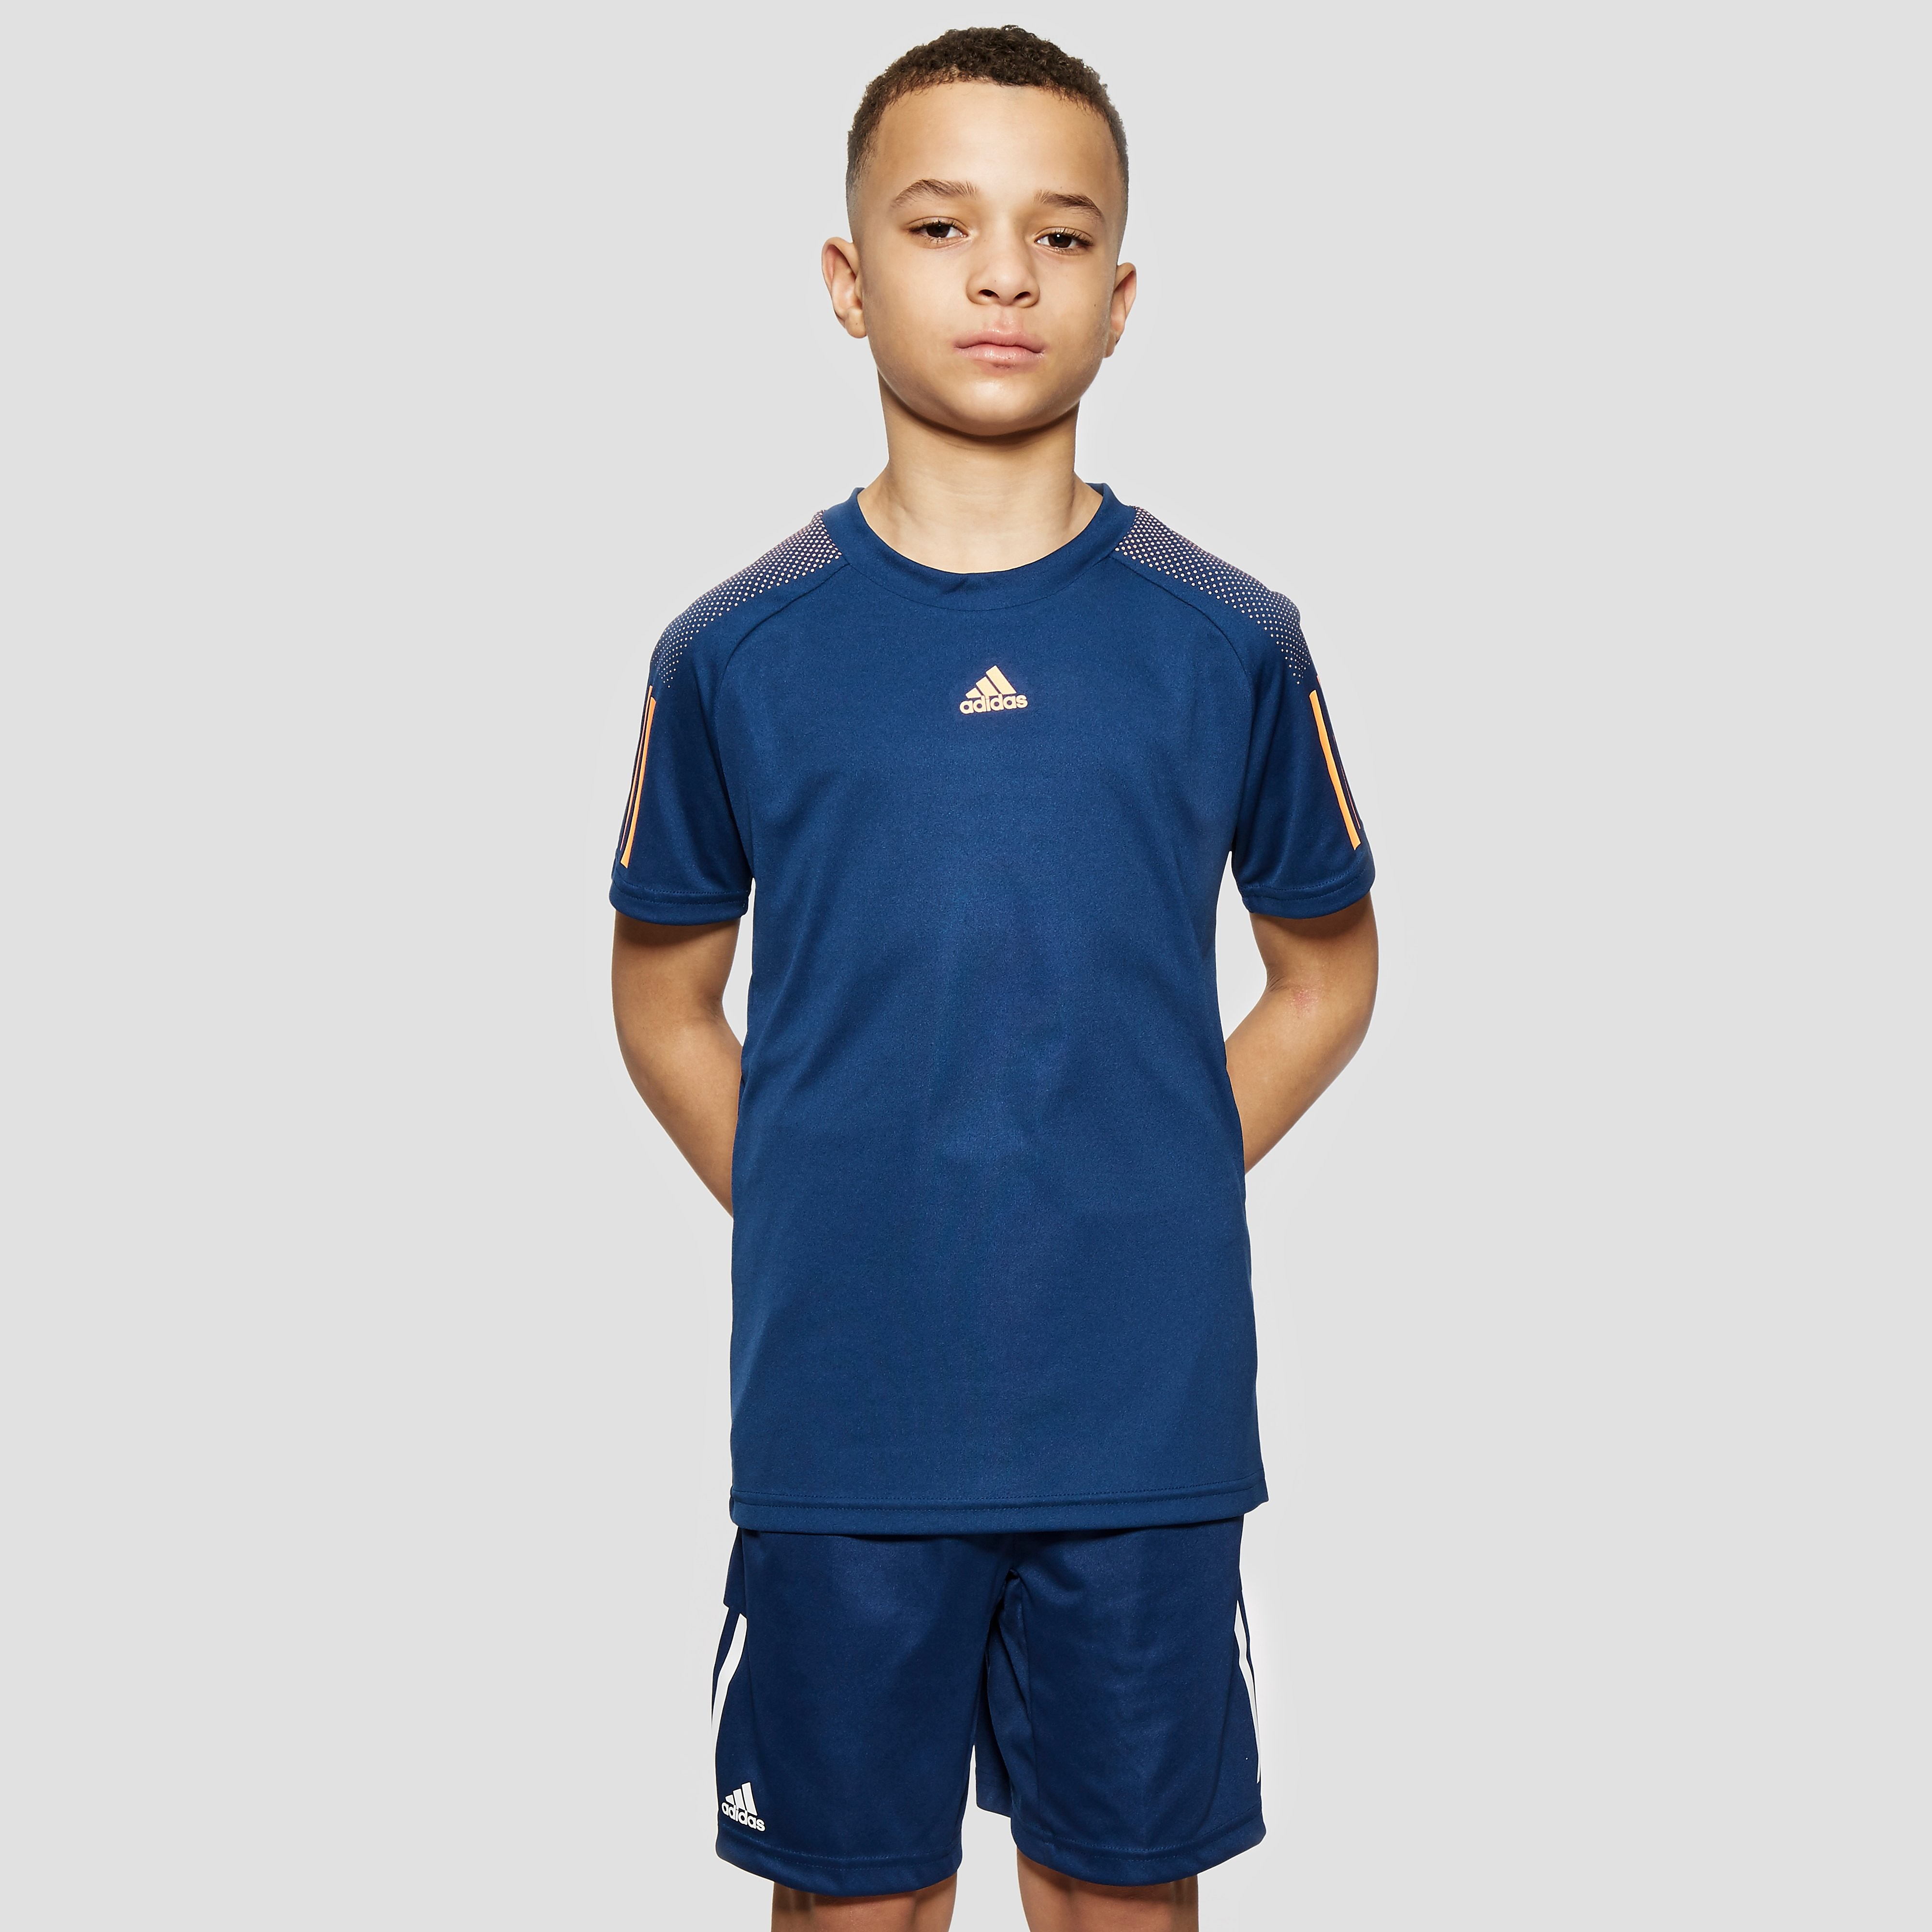 adidas Barricade Junior Tennis T-shirt